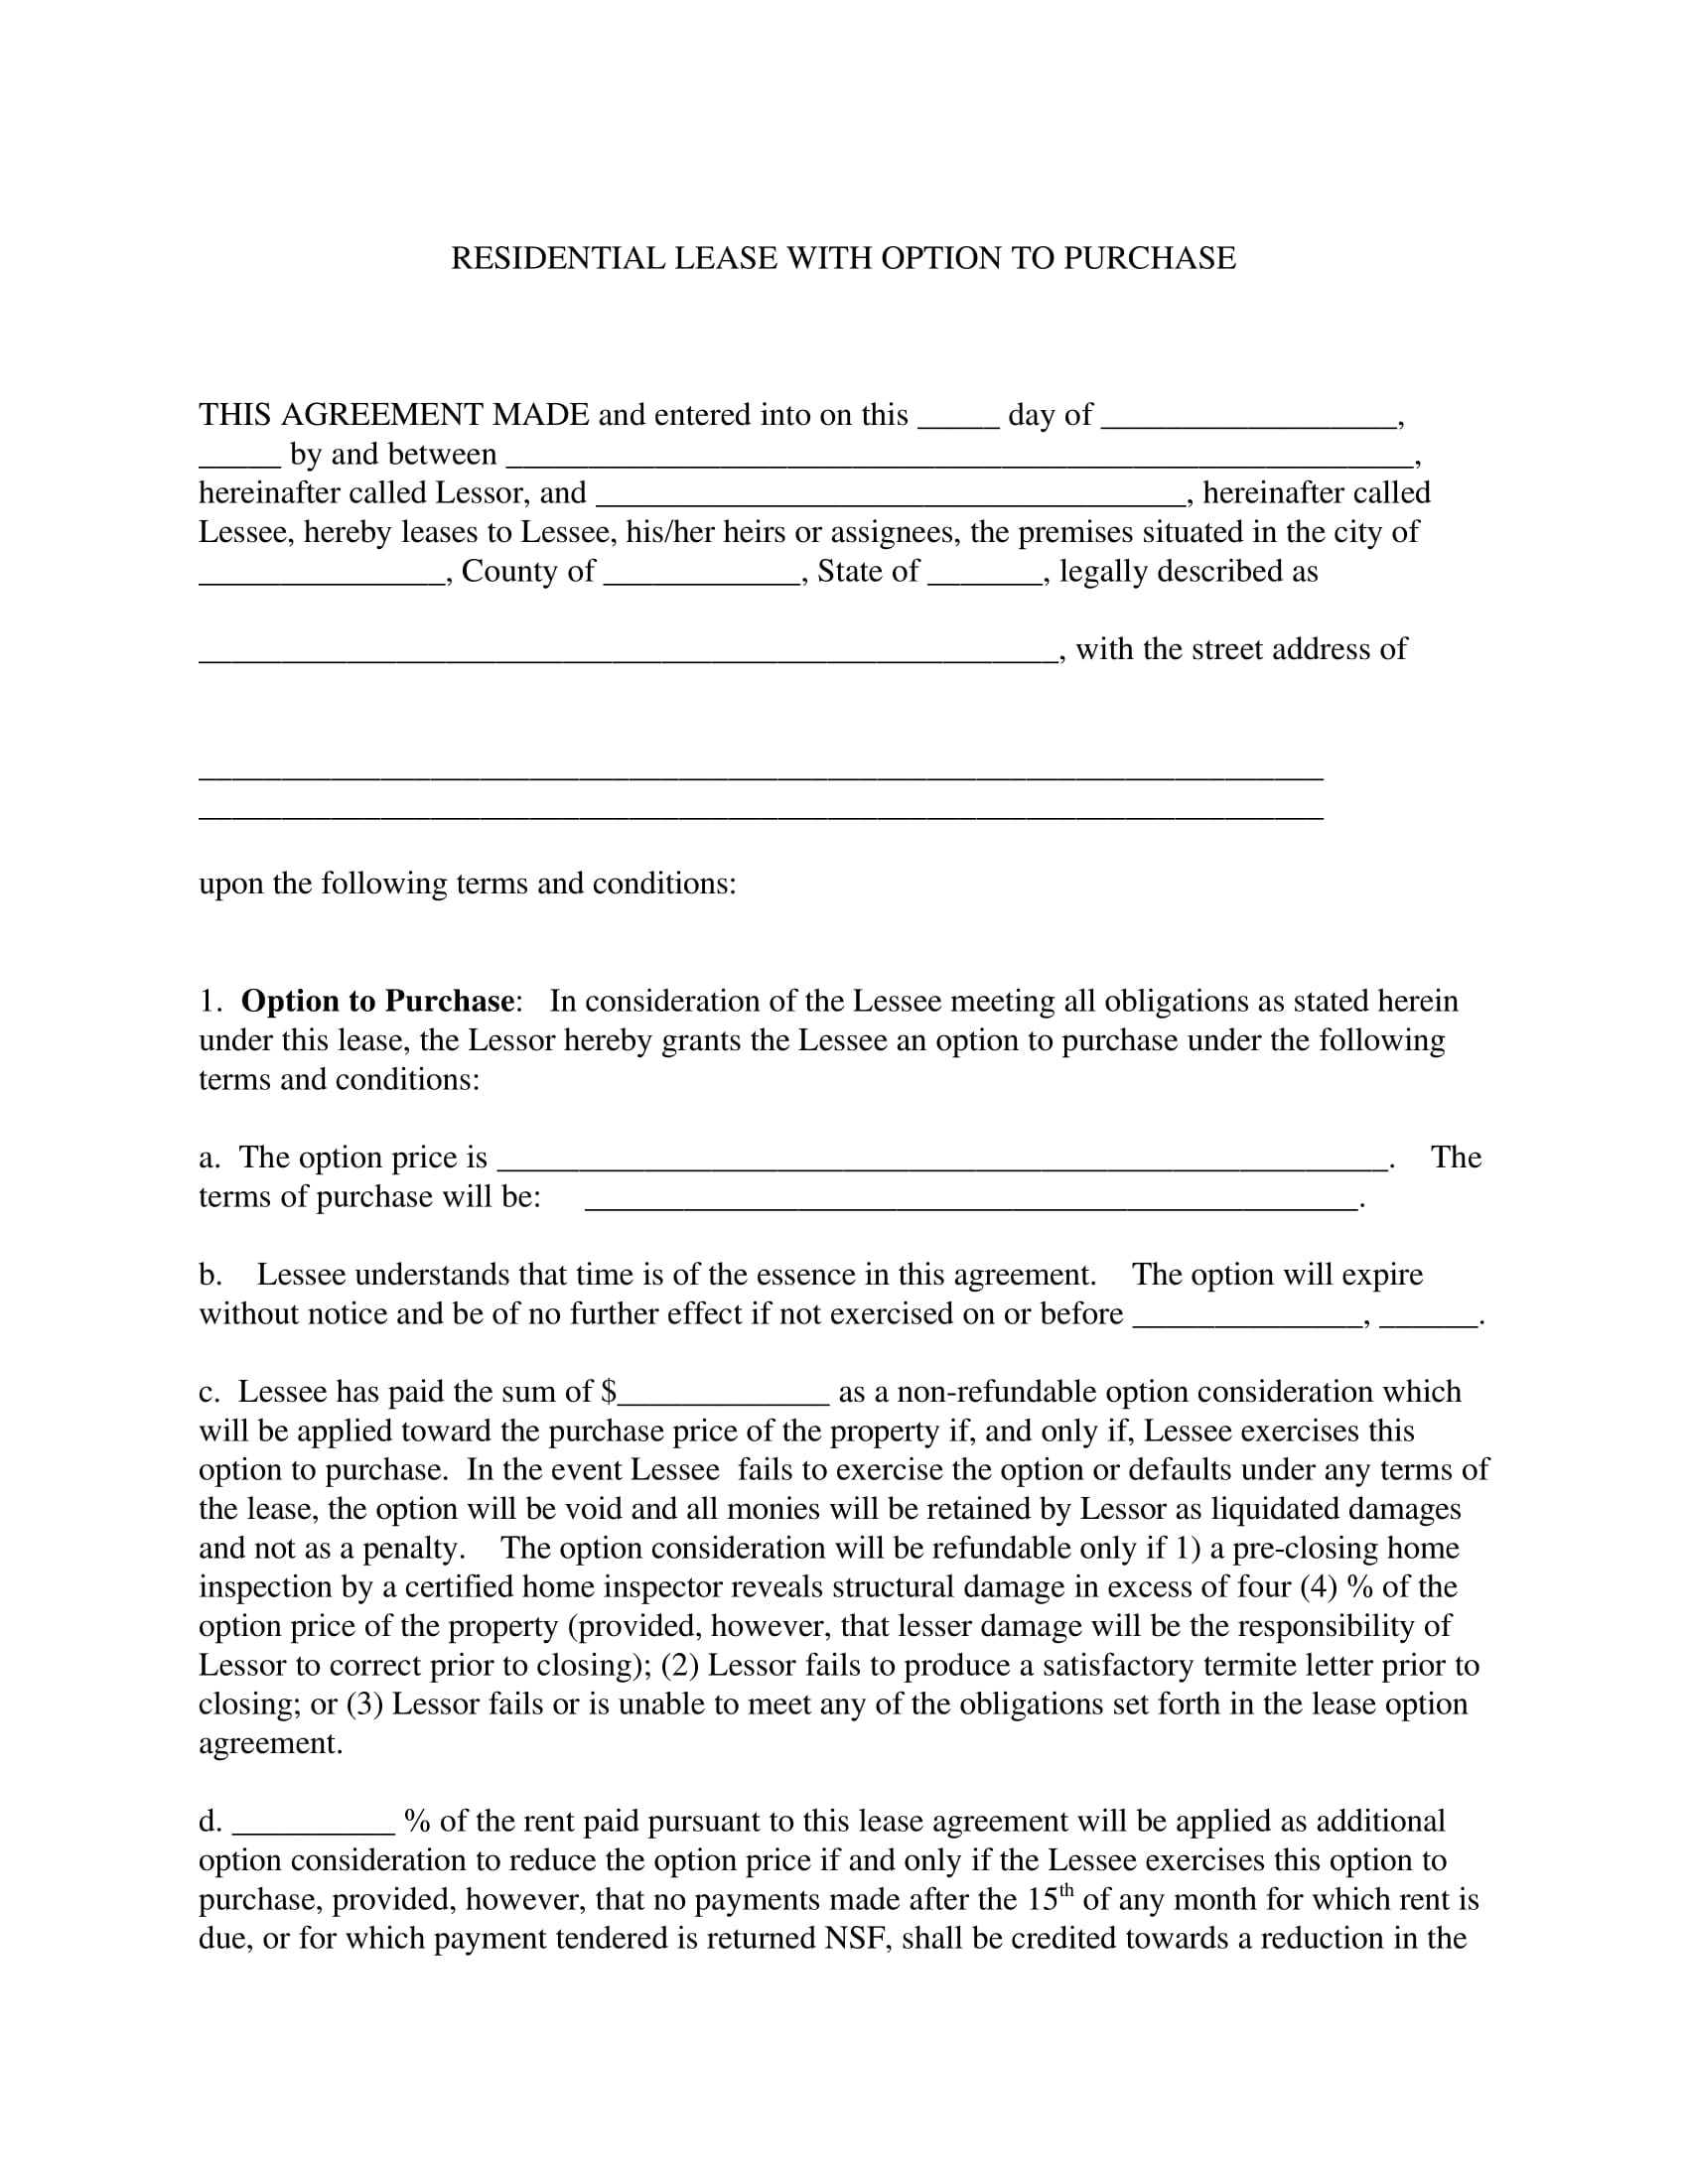 residential lease with option to purchase purchase agreement example